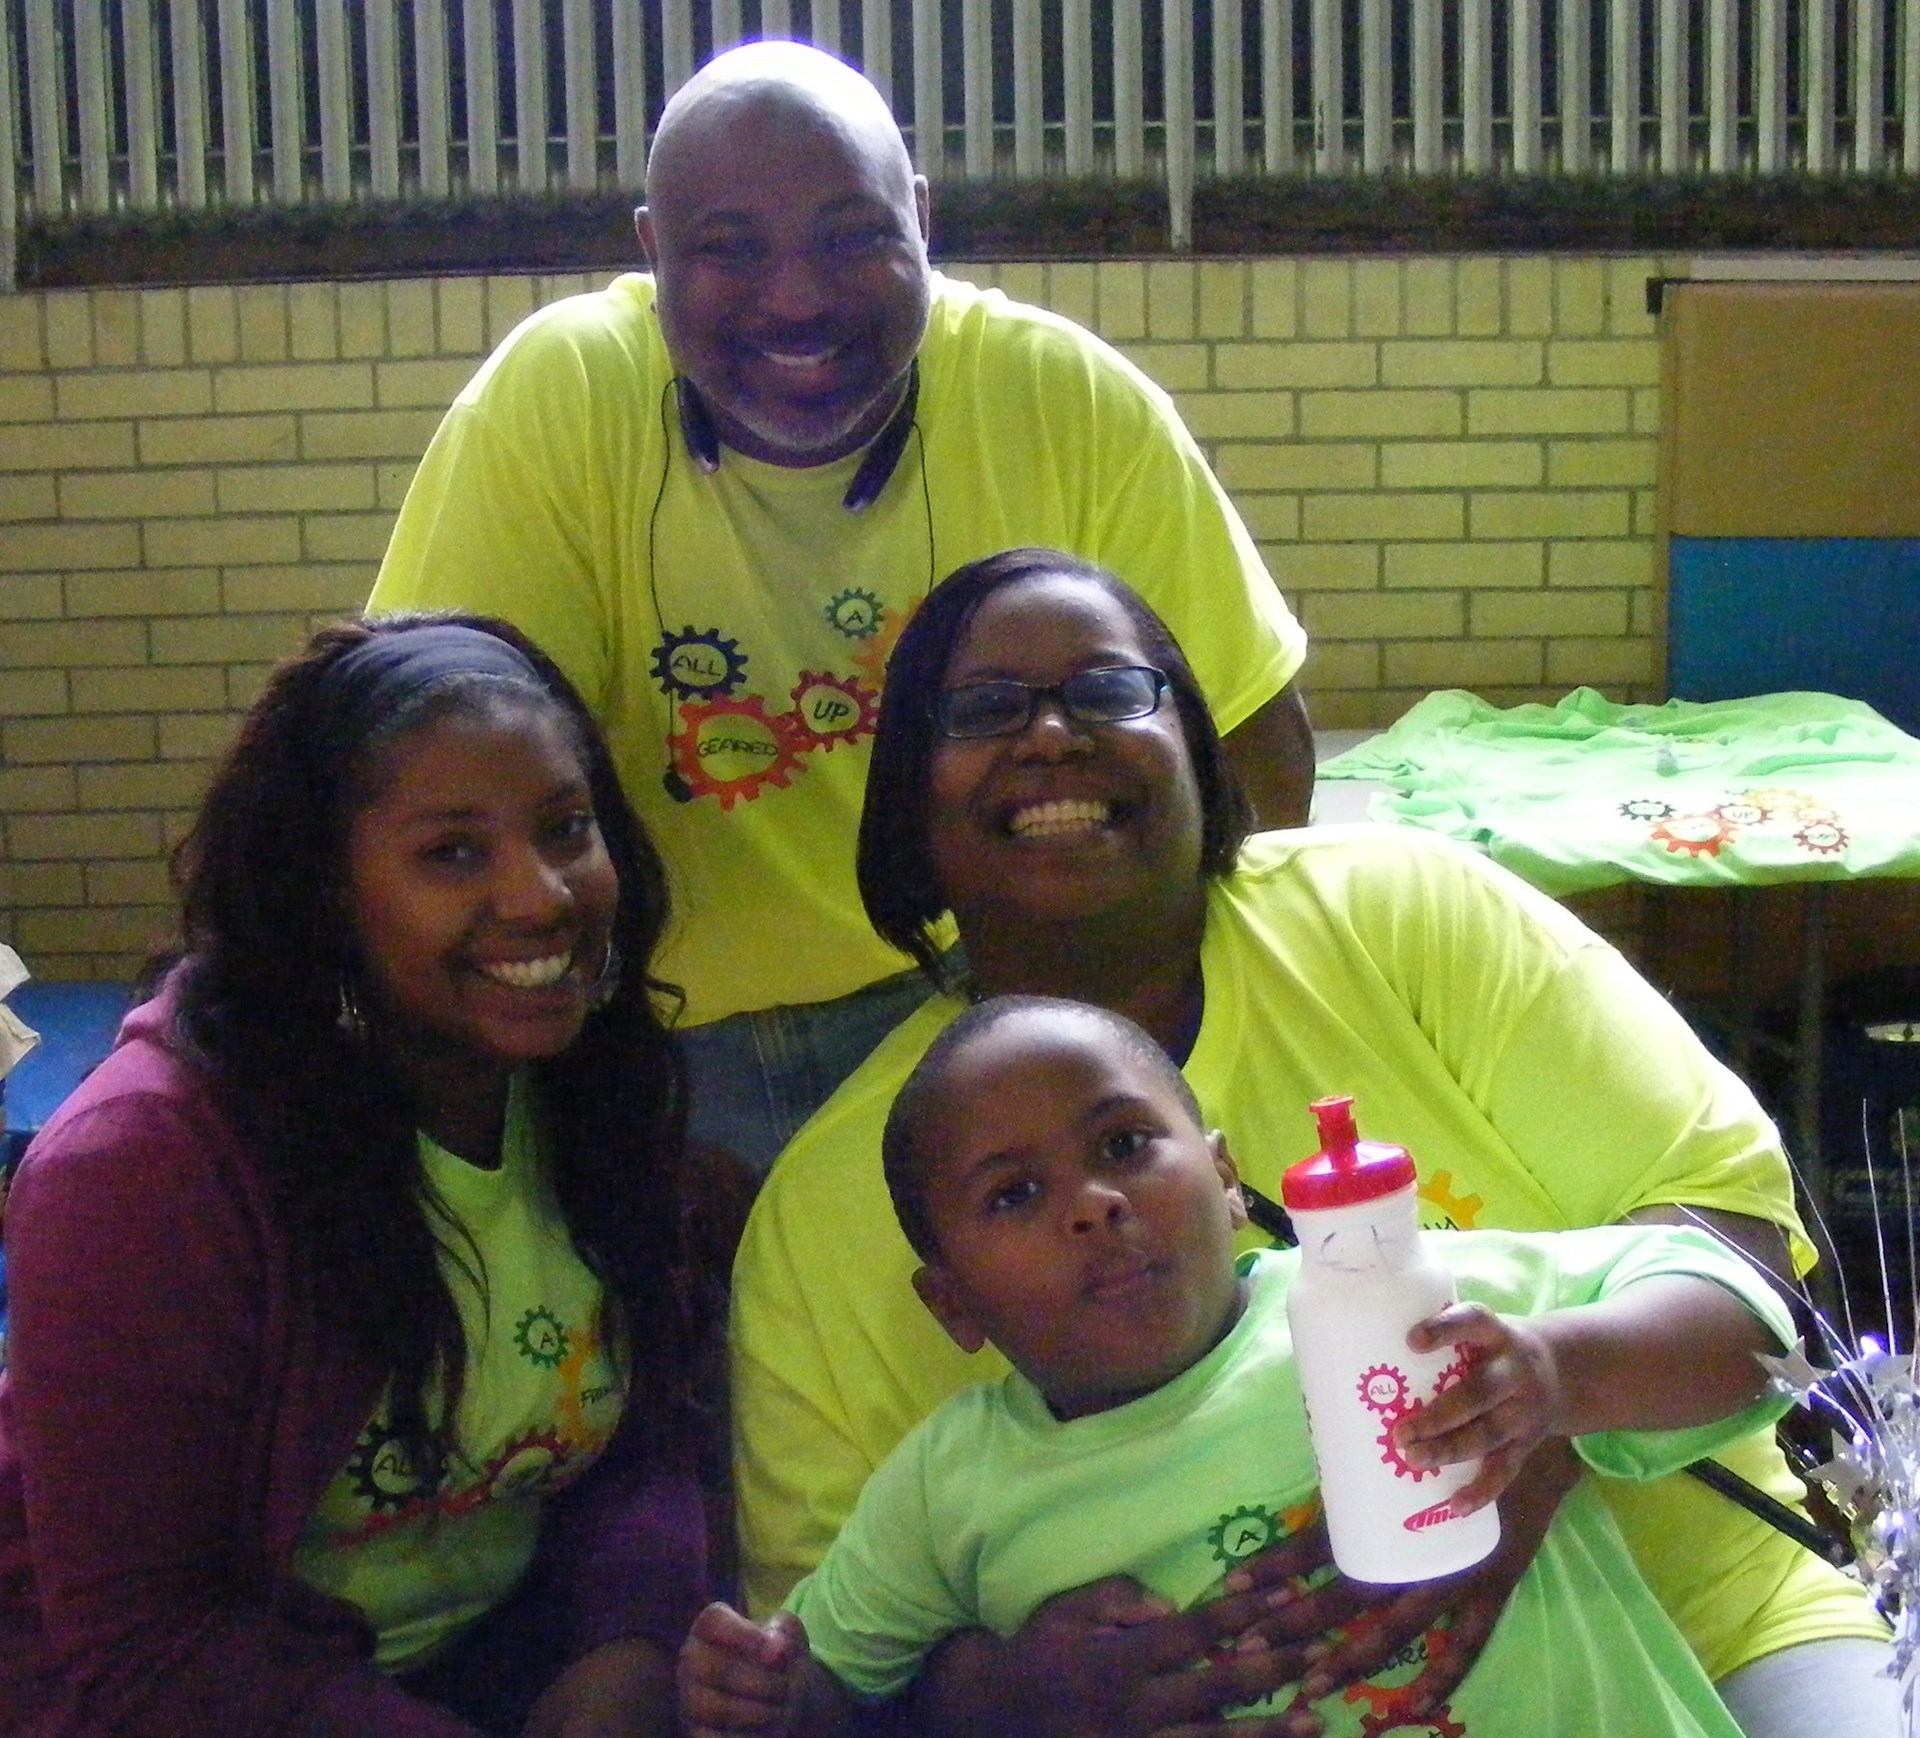 Event organizer Darren Carter and family